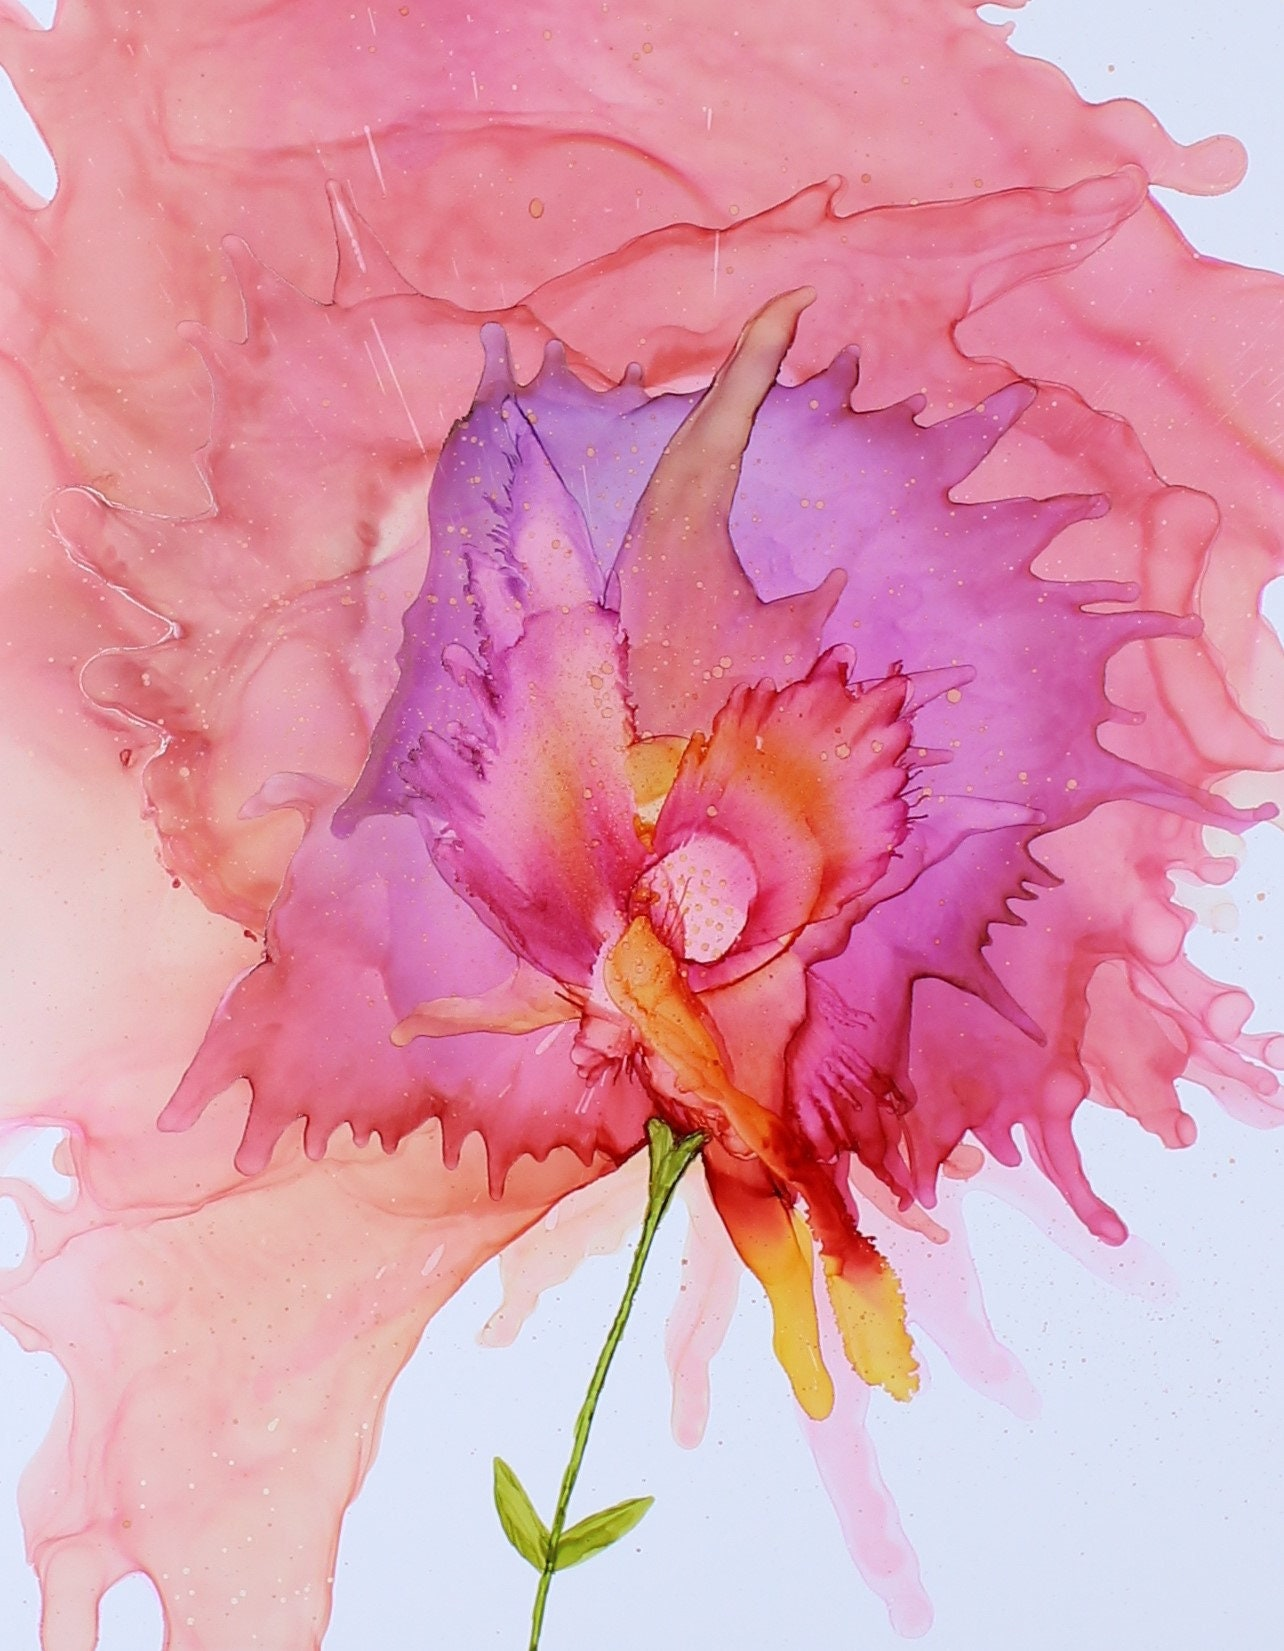 Pink Flower Abstract Alcohol Ink Art